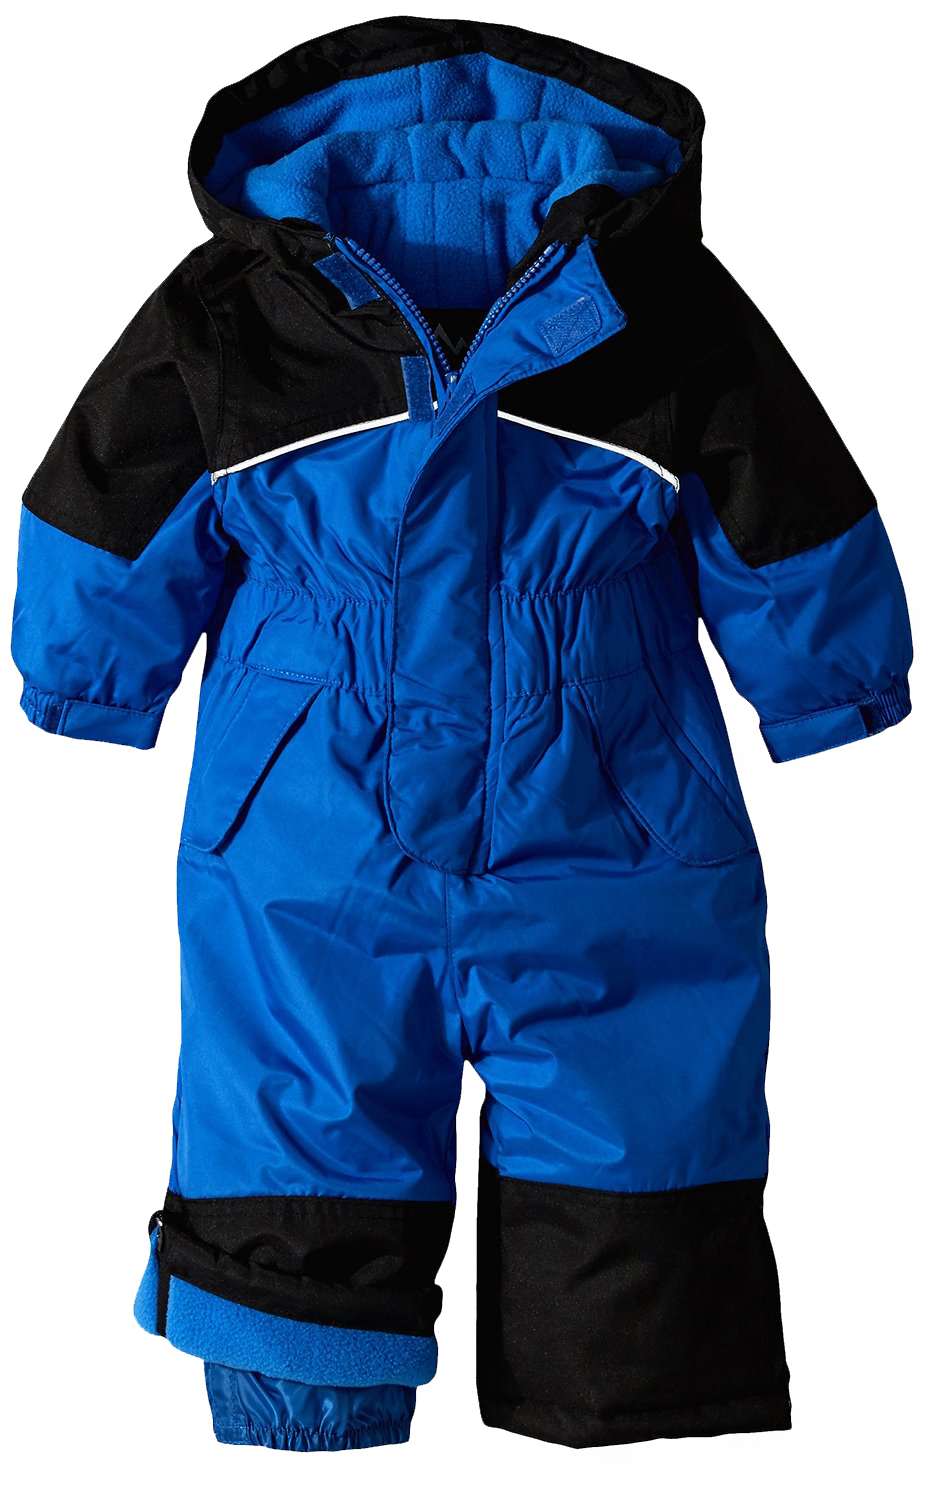 Hand picked, top of the line snowsuits & jackets for kids at deep discounts. Top brands like Columbia, OshKosh & more.